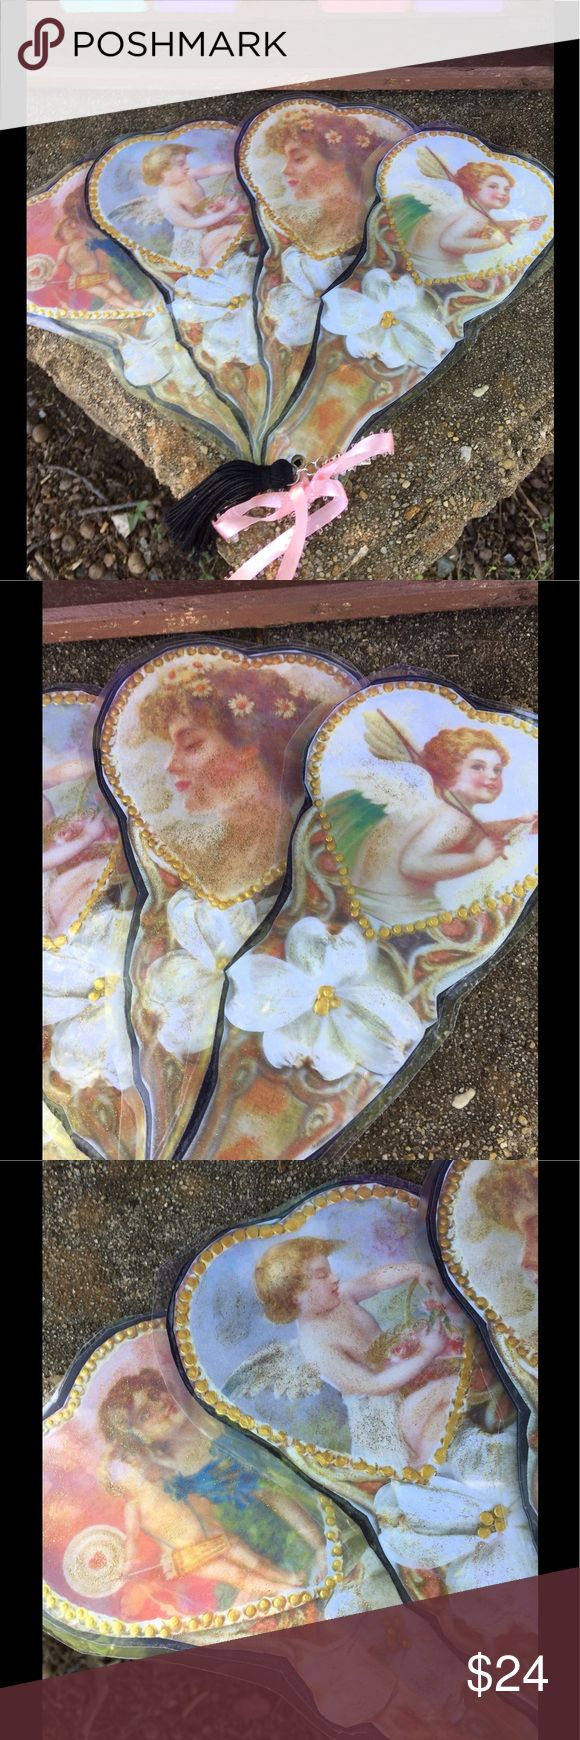 Victorian Tassled Cherub Dogwood Hand Fan Well I got the idea to make these when I saw these beautiful pics online and went from there. I used glitter and gold highlights and added a Tassle with ribbon and laminated. Will be listing many more including a cat, butterfly, birdcages, etc. Measures about 8 x 10 when open. Scanned dogwood flowers. Please no lowball offers as it cost money for all my supplies especially all the ink to print! They make lovely gifts and from what I have seen are…